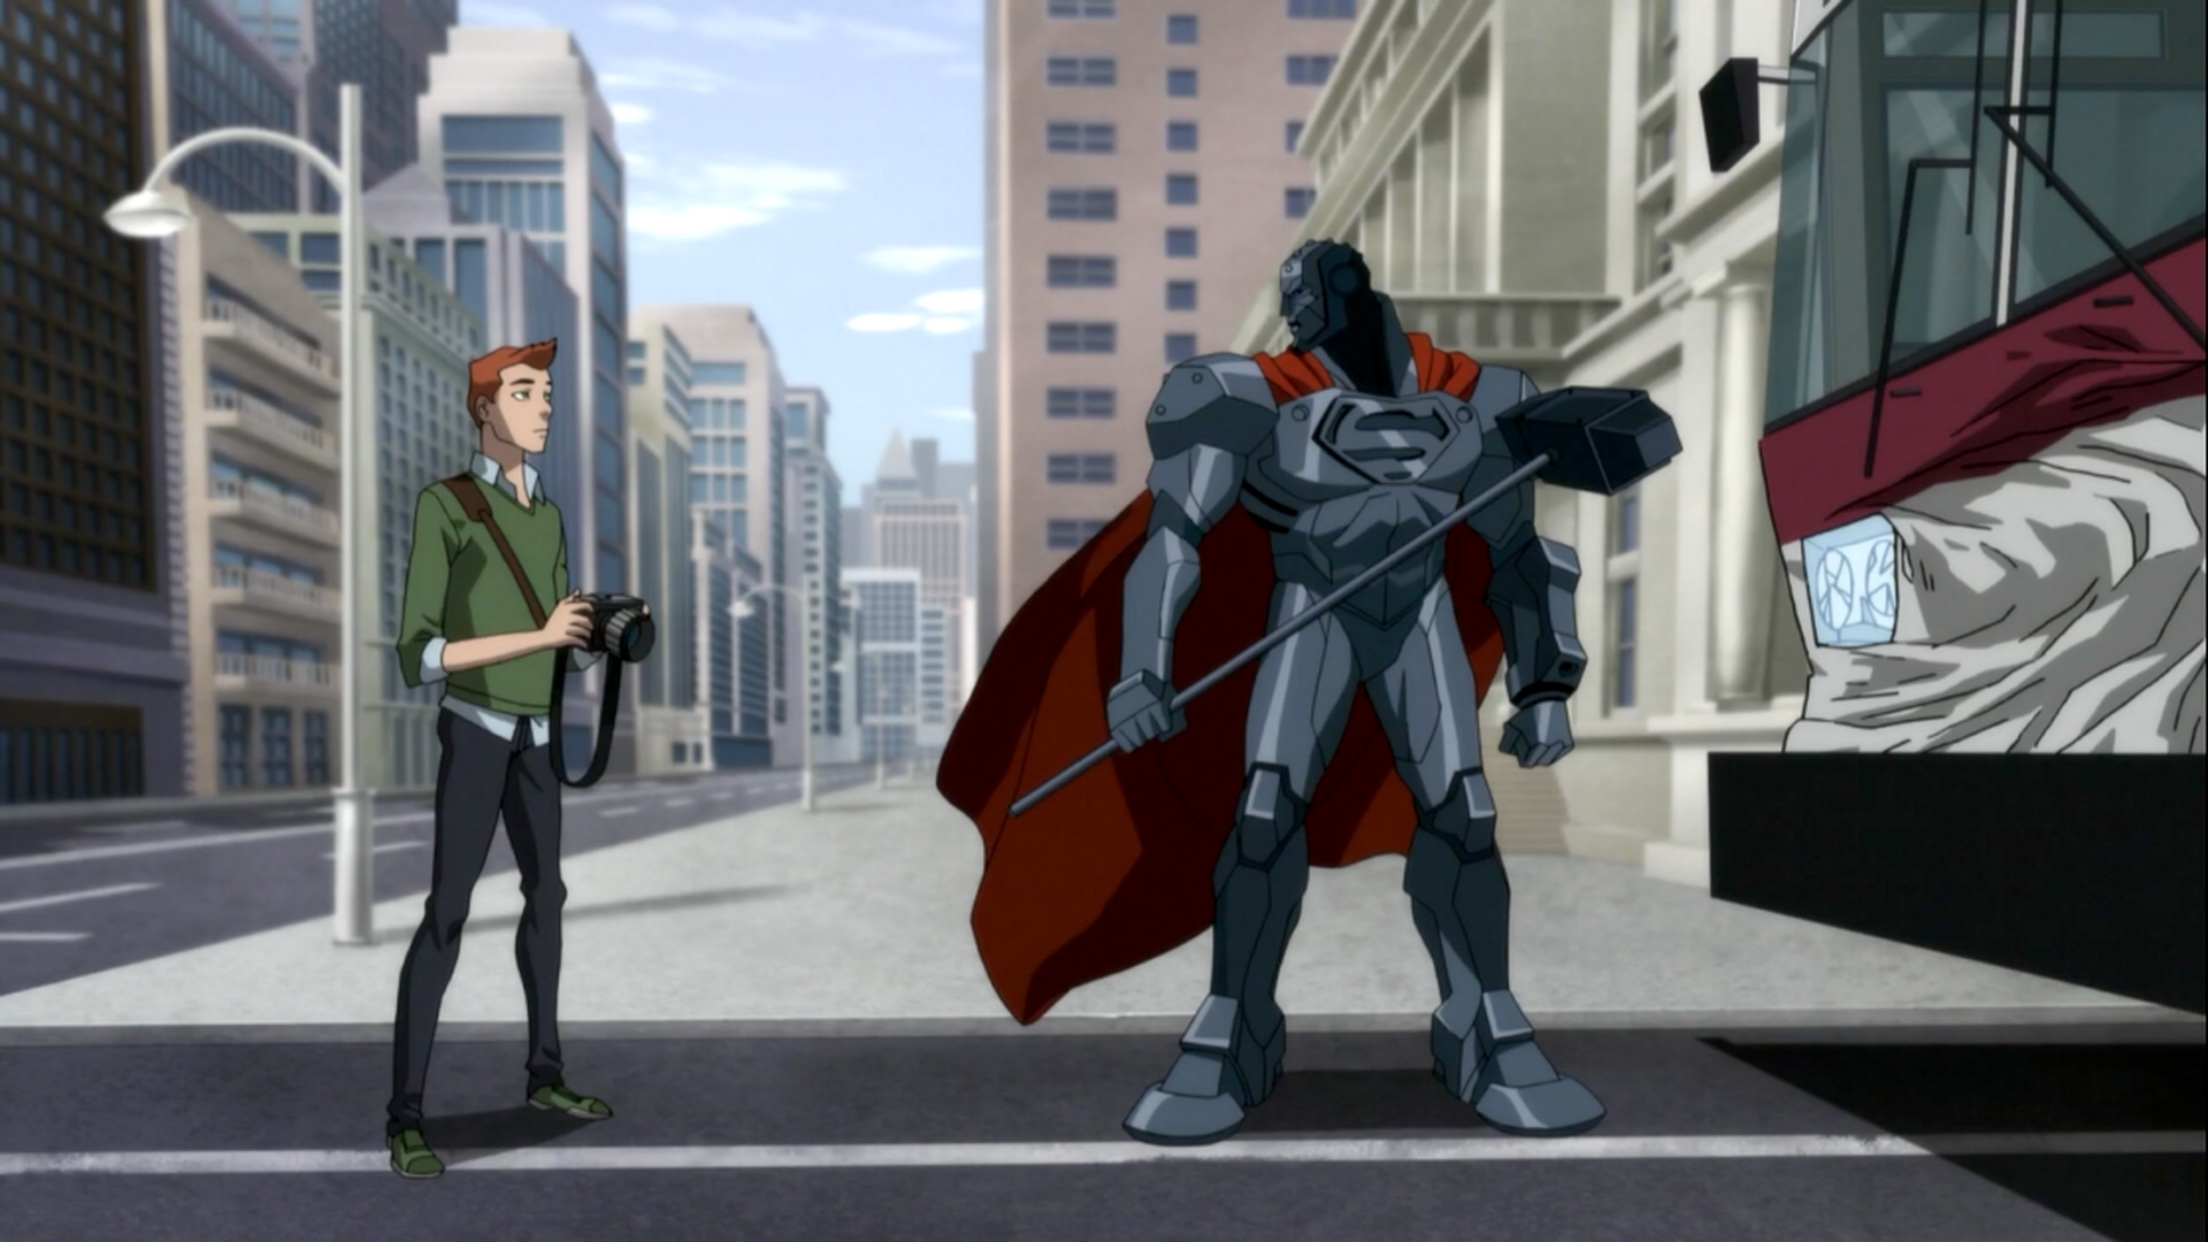 Cress Williams and Max Mittelman in The Death and Return of Superman (2019)